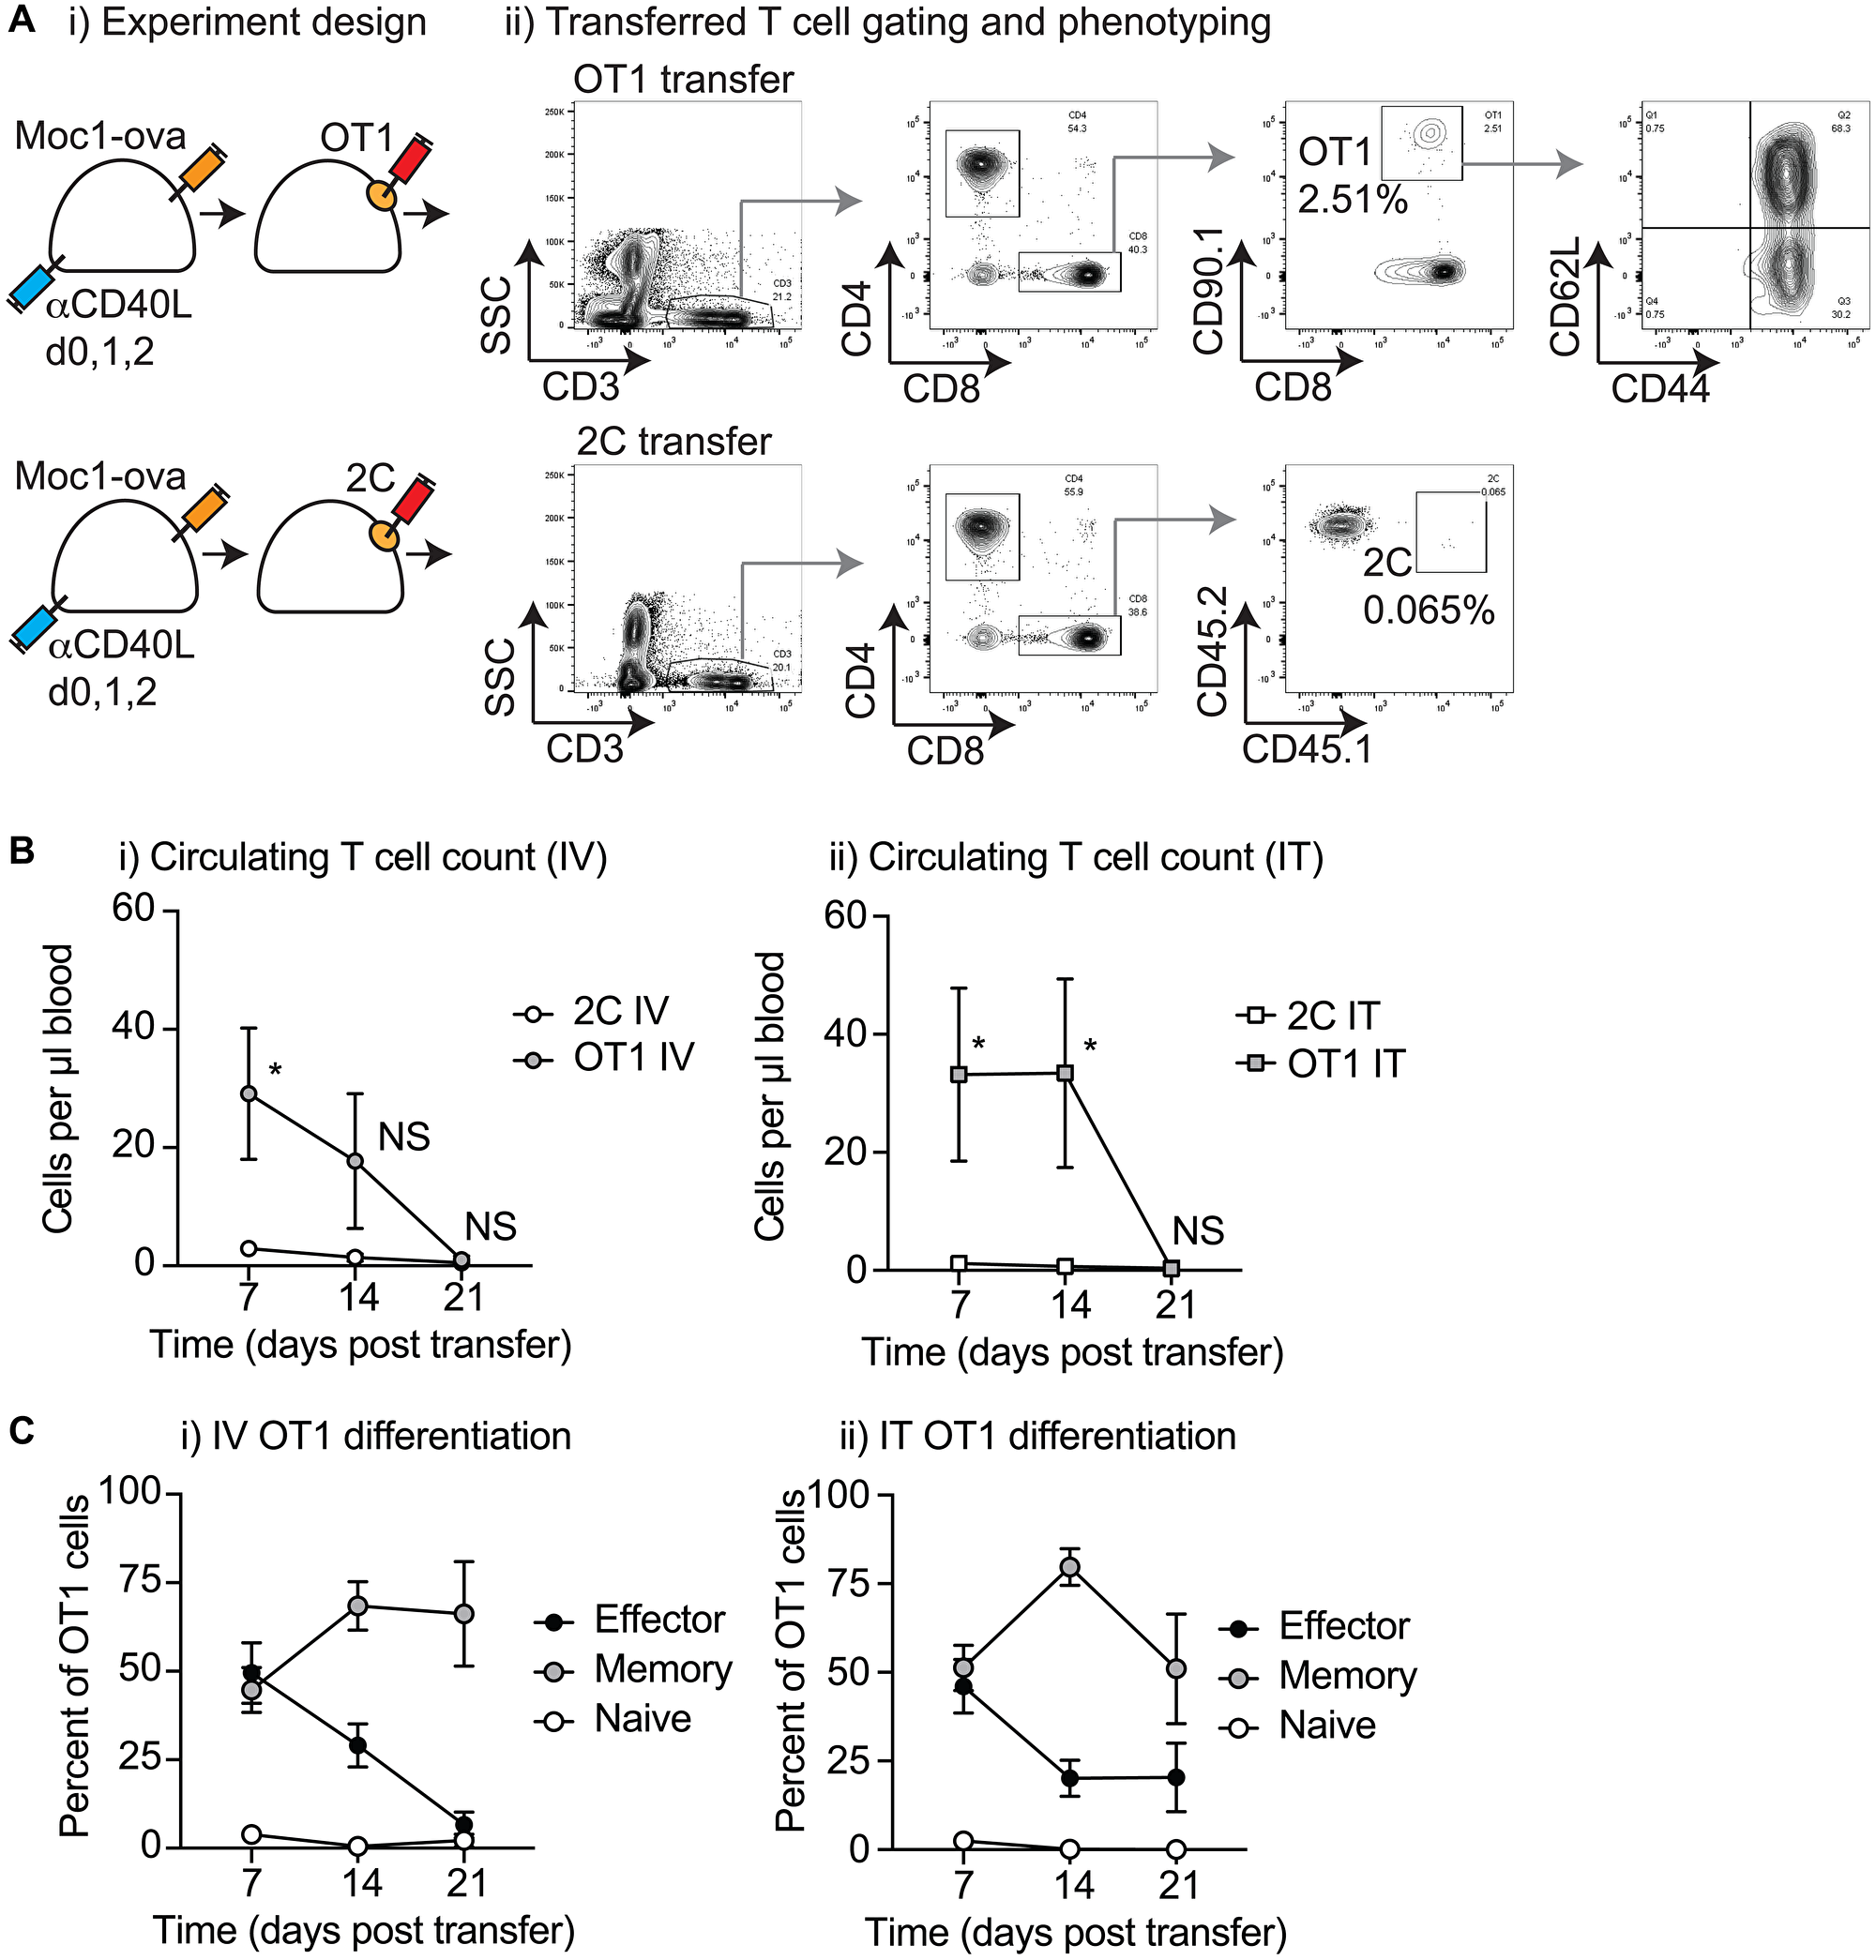 Characterization of circulating T-cells following biomaterial injection.